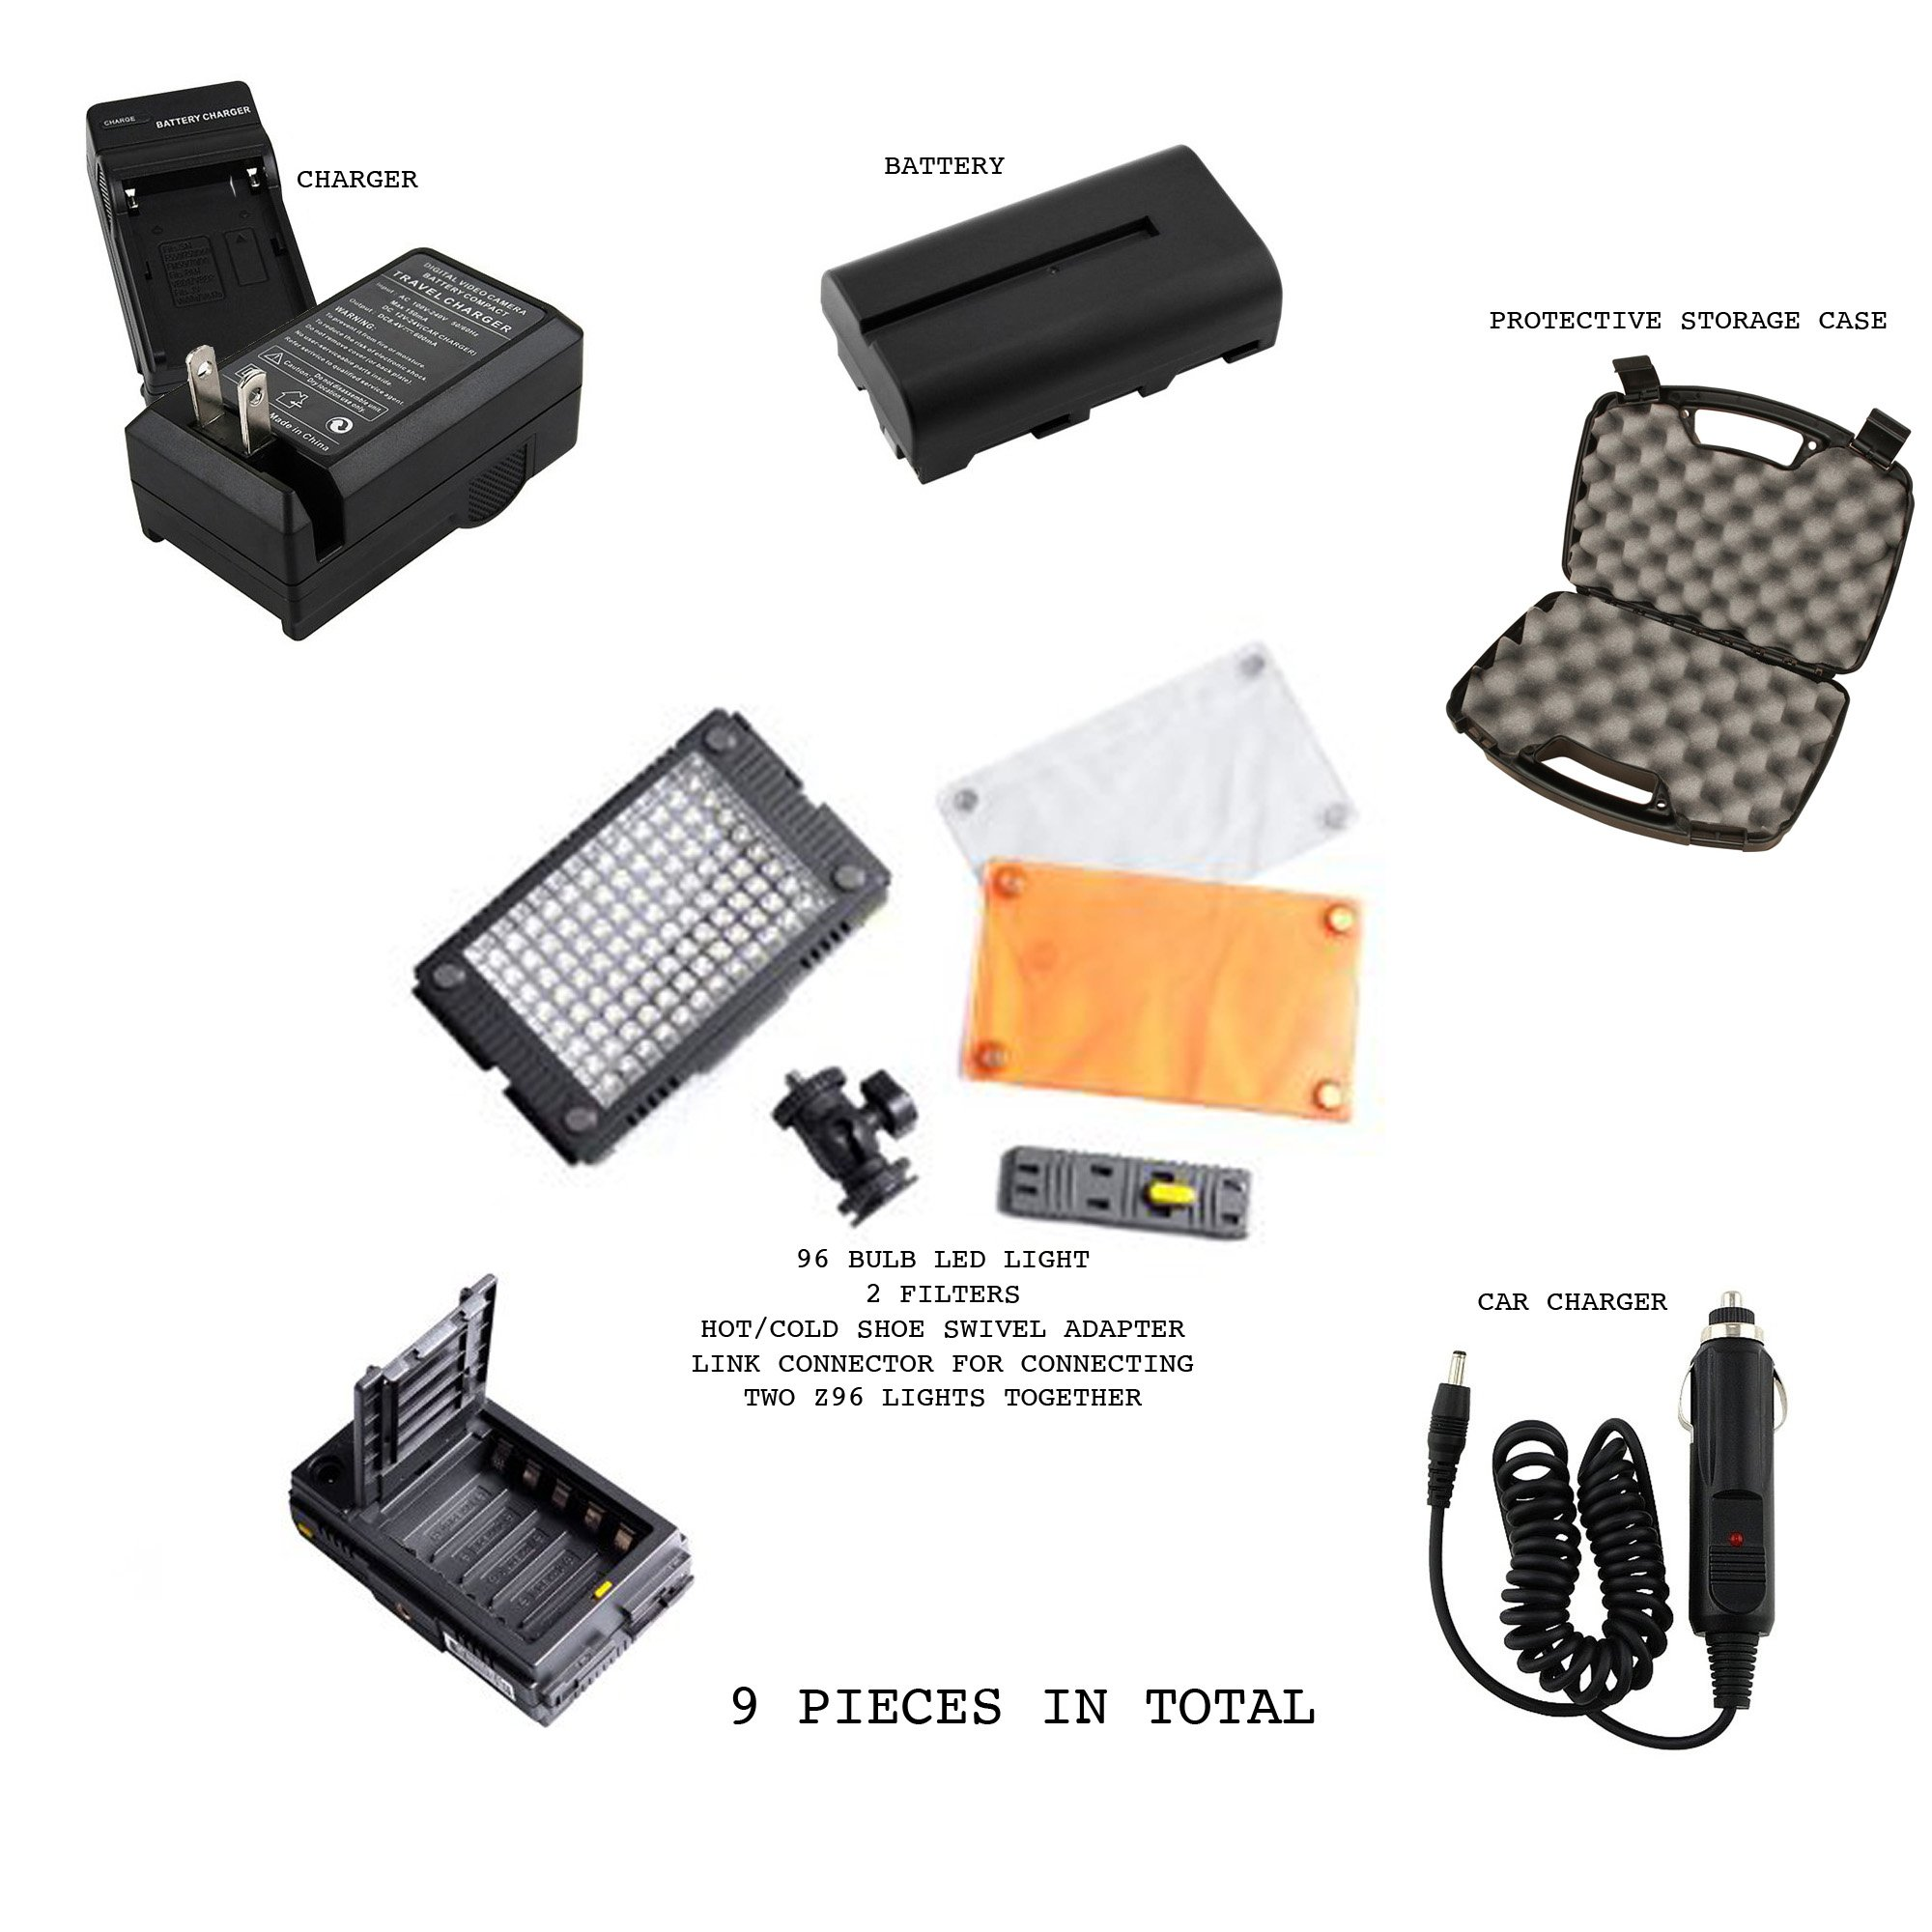 HDV-Z96 plus extras 9 Piece Light kit Bundle for Dslr Photo / Video includes HDV-Z96 LED Light Panel made by F and V, 2 Magnetic Filters, Cold Shoe Ball Joint Mount, Connector Plate, Rechargeable Battery, Battery Charger, Car Cigarette Charger Cable, Prot